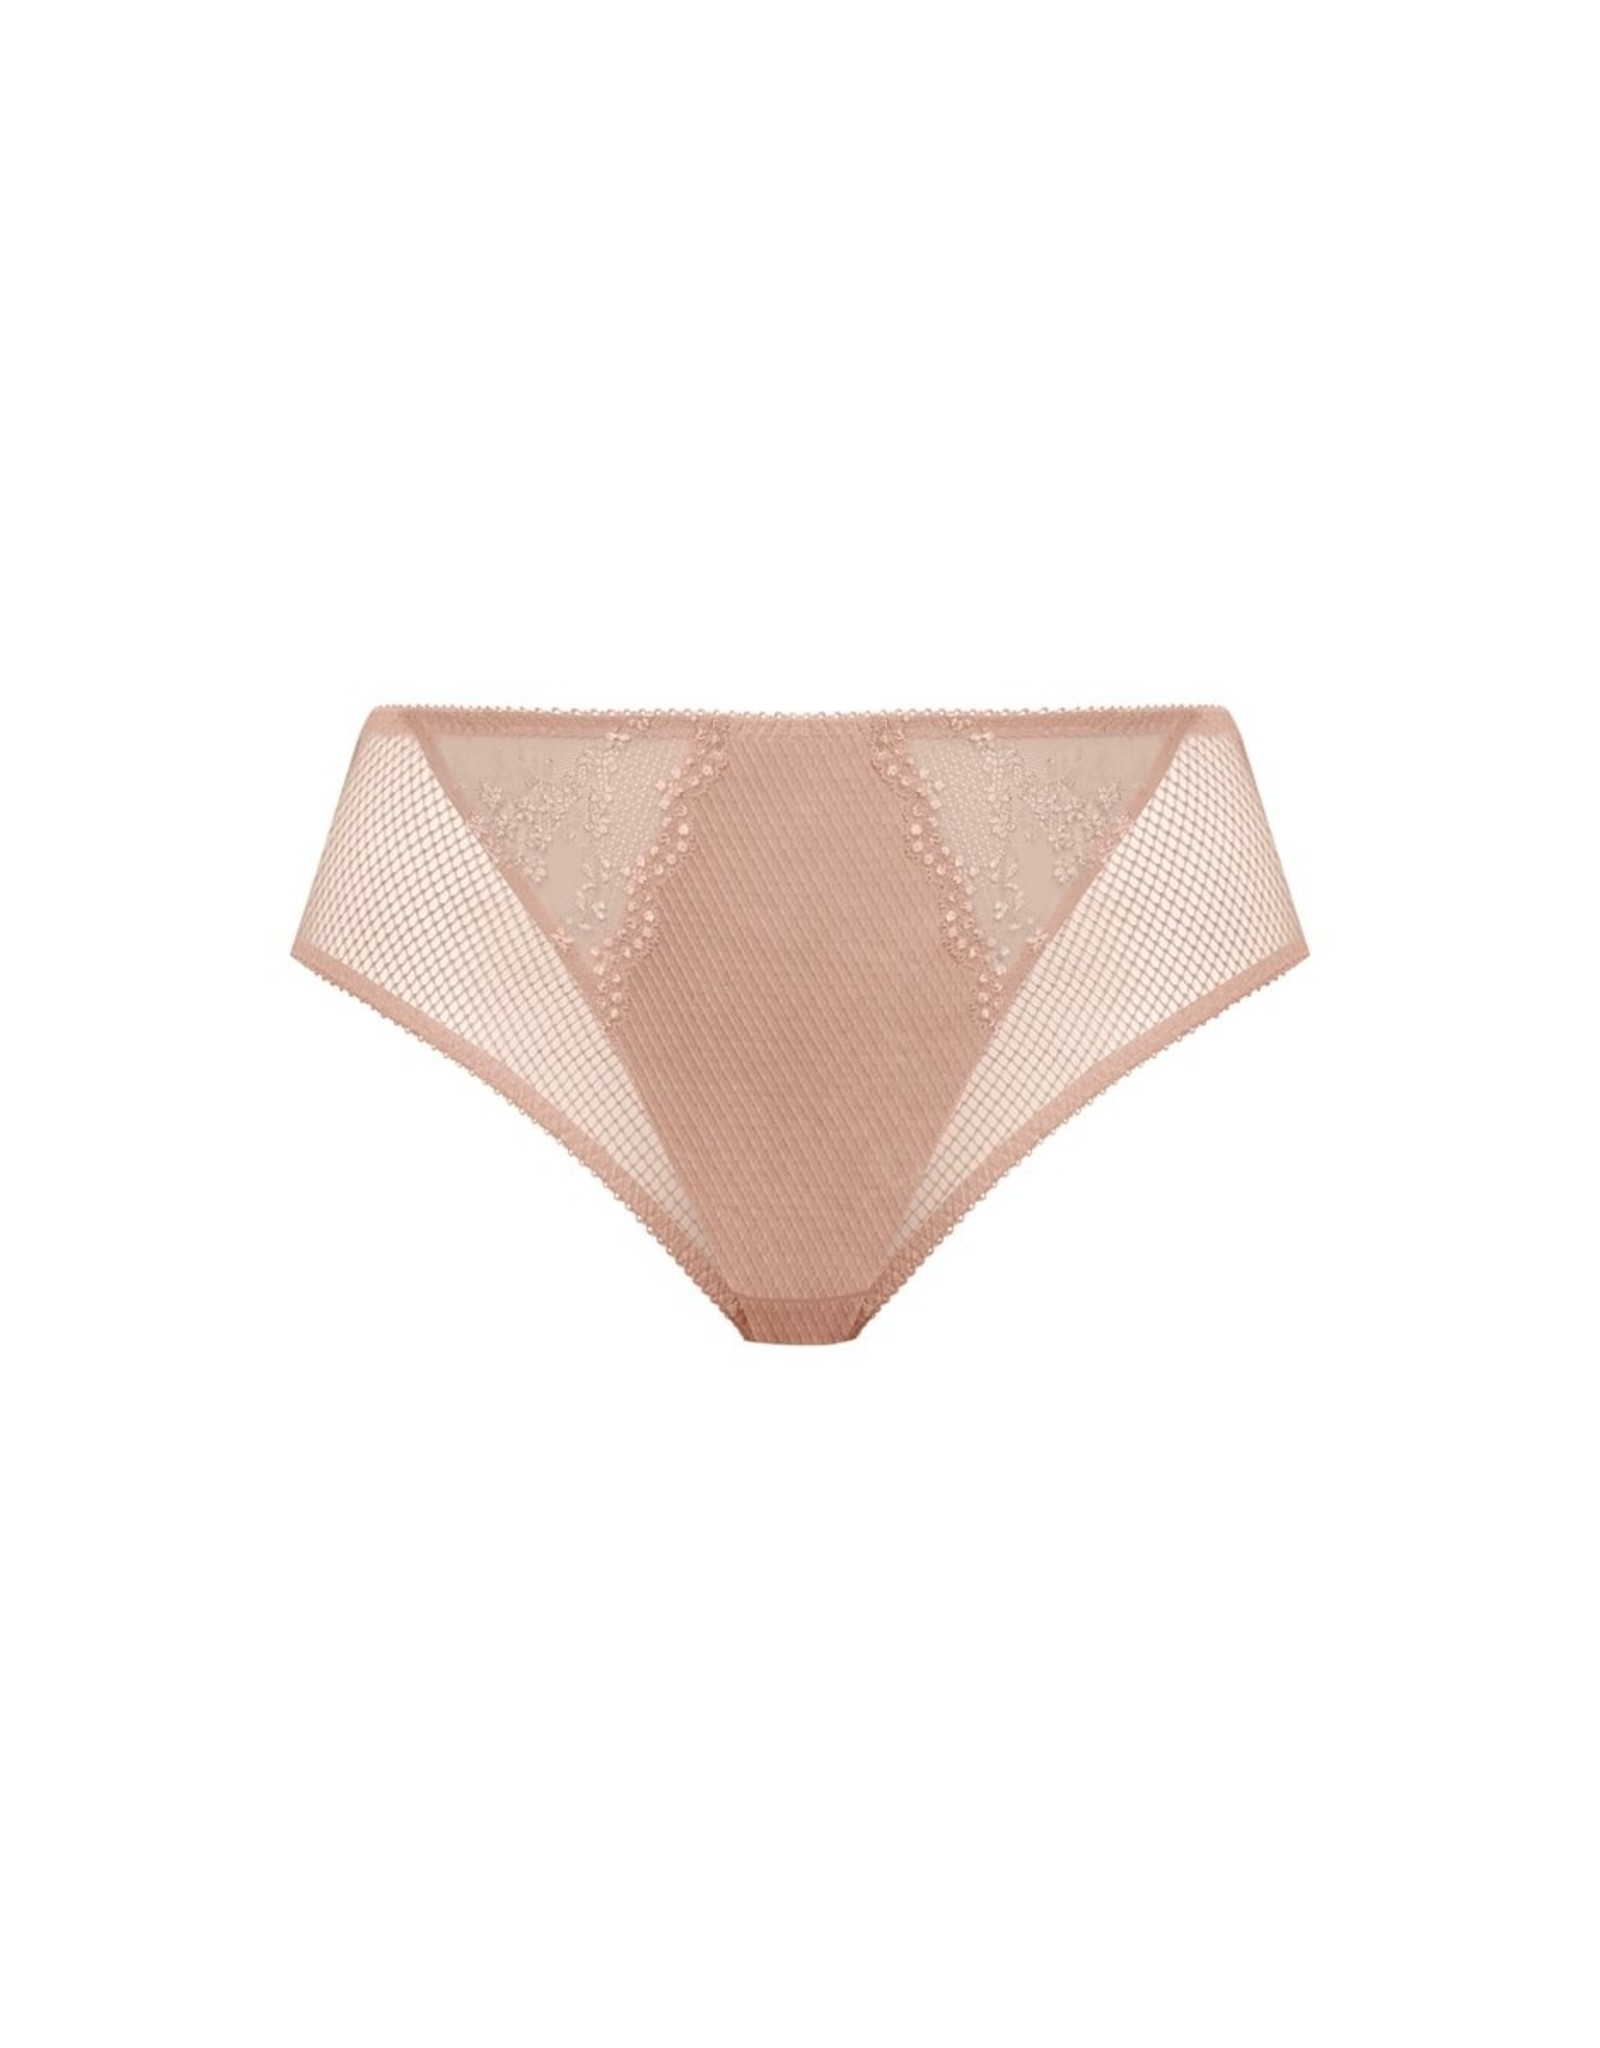 Elomi EL Charley High Leg Brief